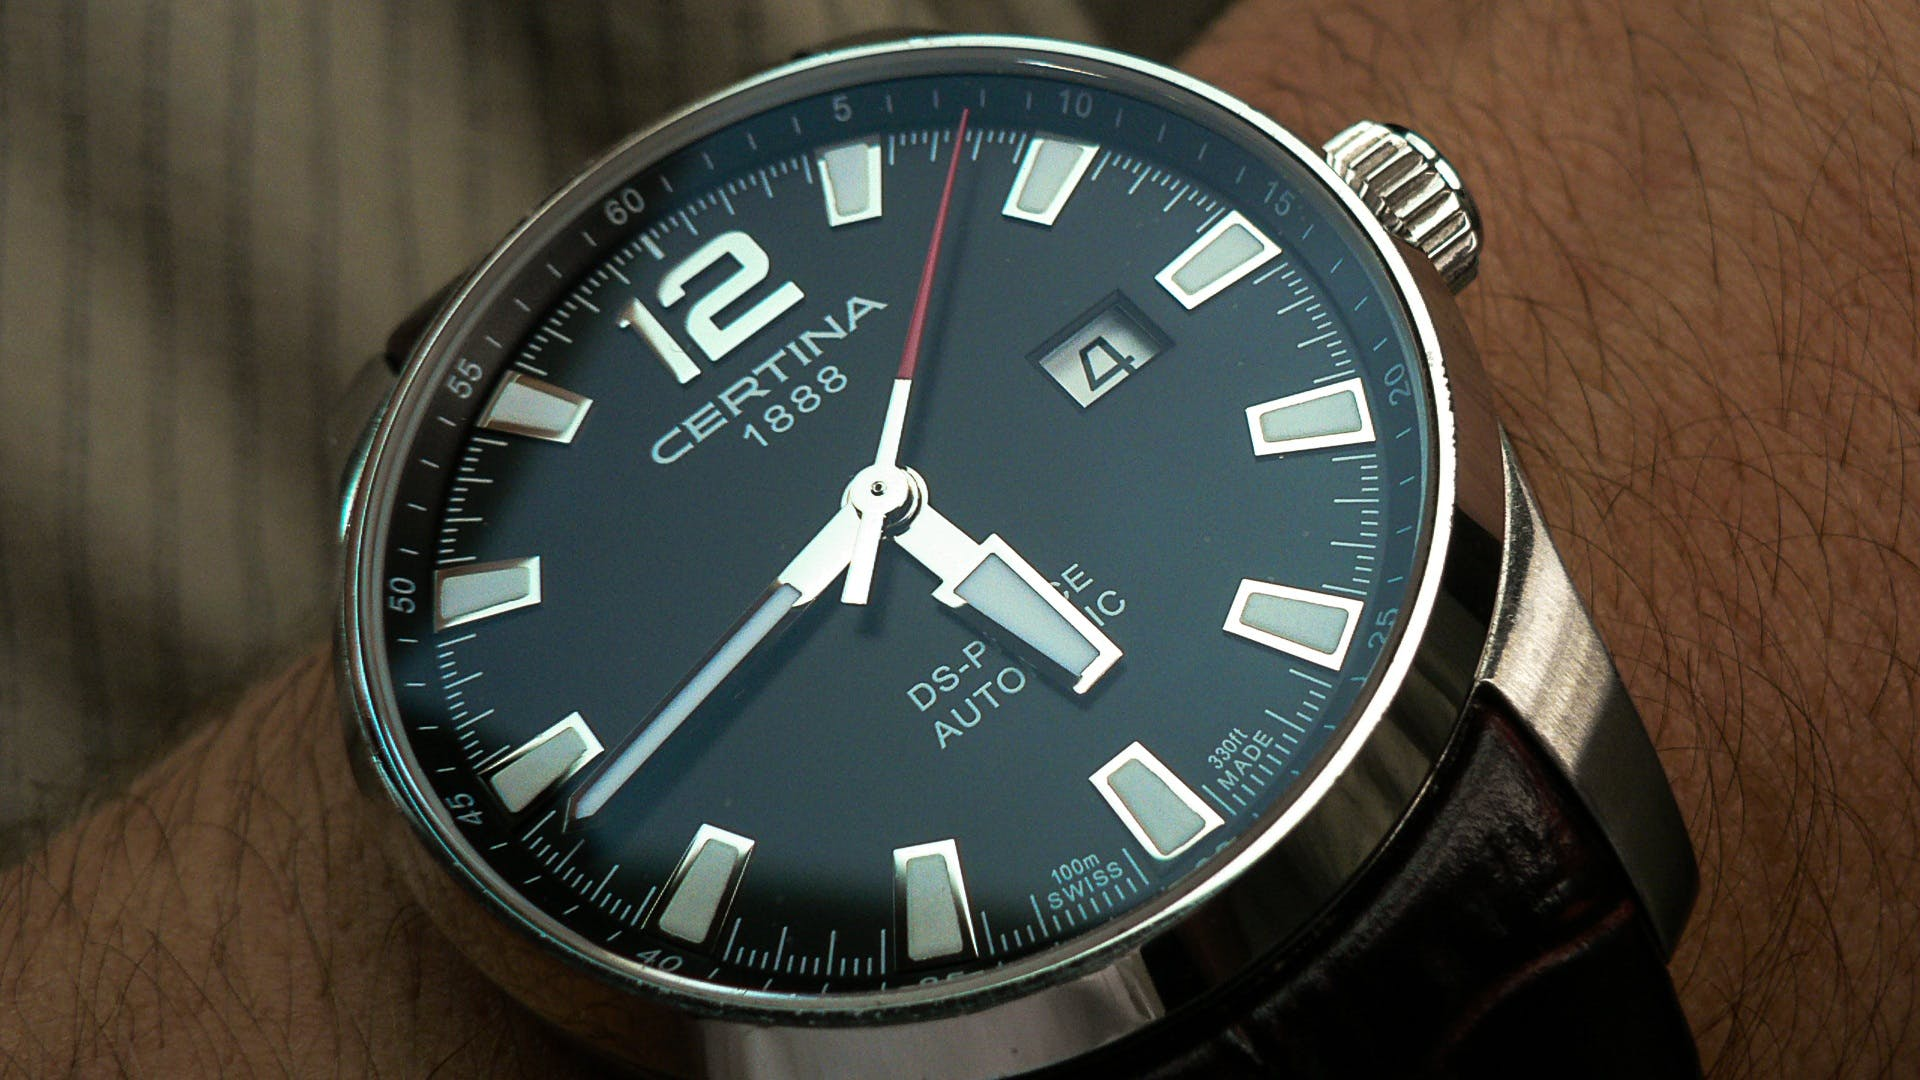 Person Wearing Round Silver-colored Certina Watch Displaying 5:44